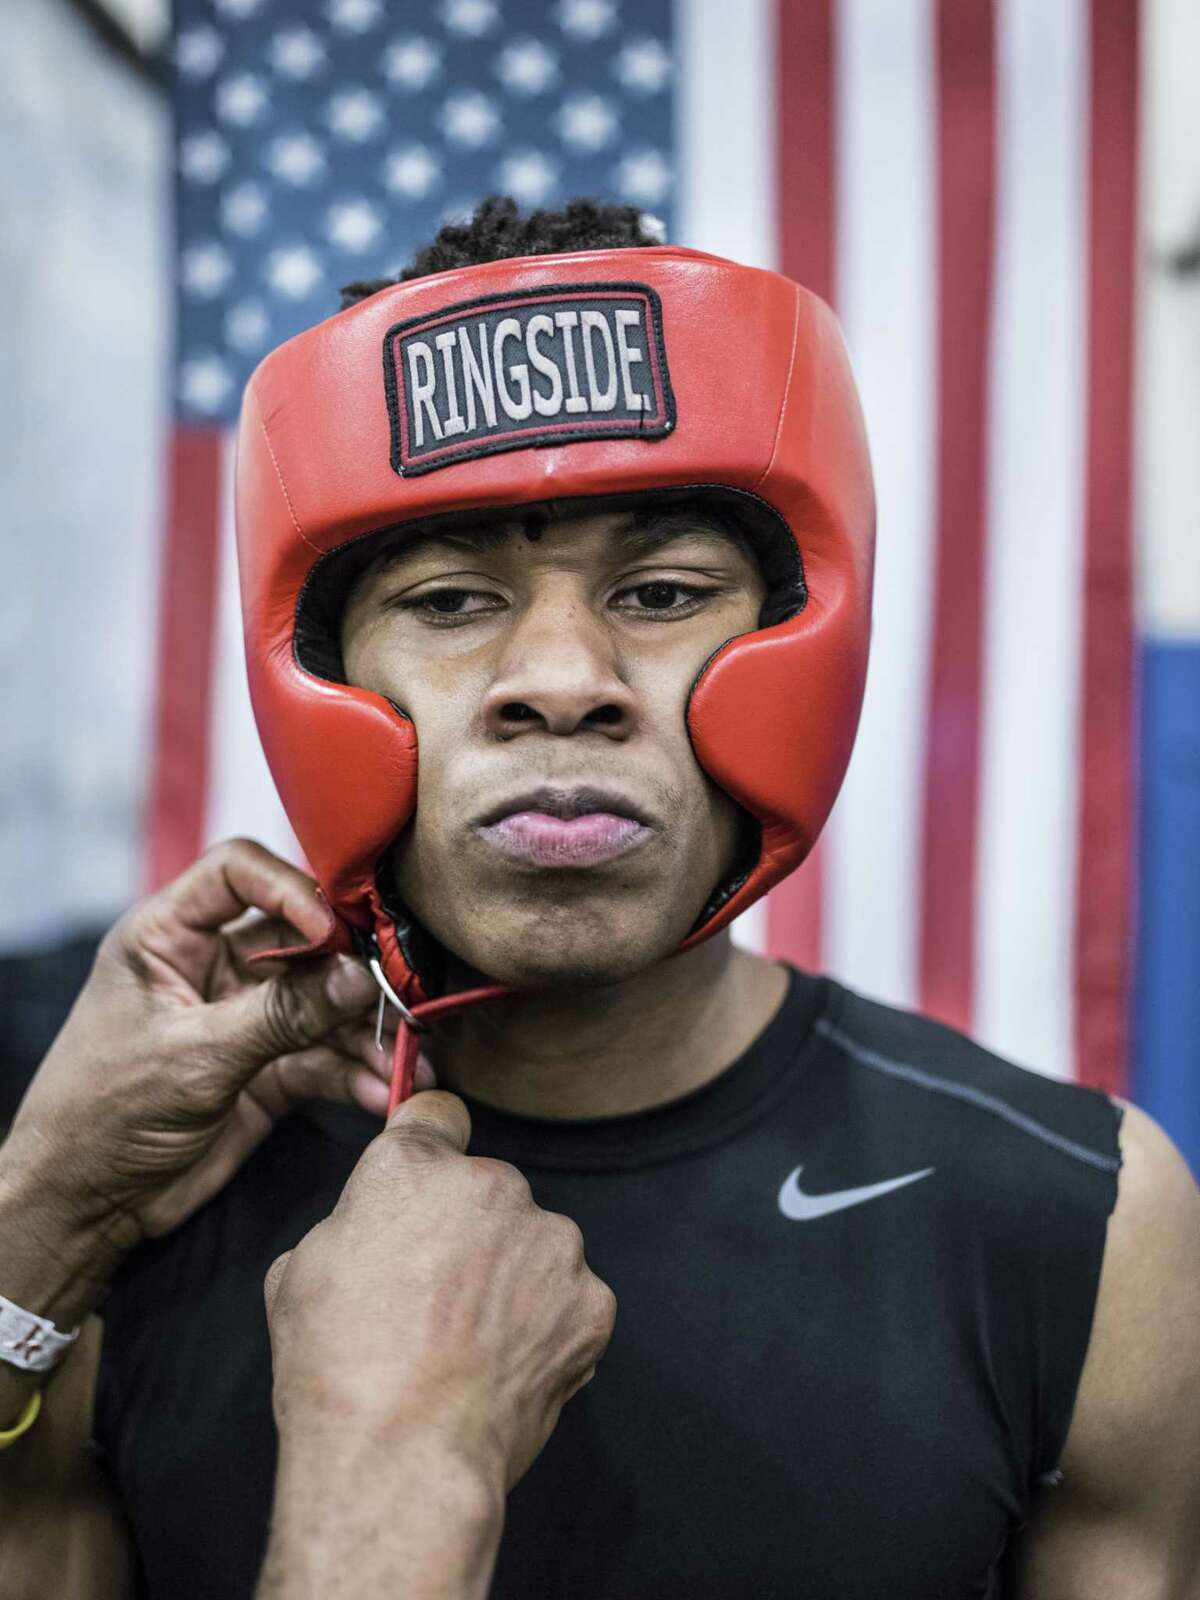 Joseph Barrow Jr., 20, from San Fernando Boxing Club, has his headgear put on before his first fight ever by longtime coach at San Fernando, Willie Hall, during a boxing event at the Lincoln Community Center in San Antonio, Texas on Saturday, March 4, 2017.